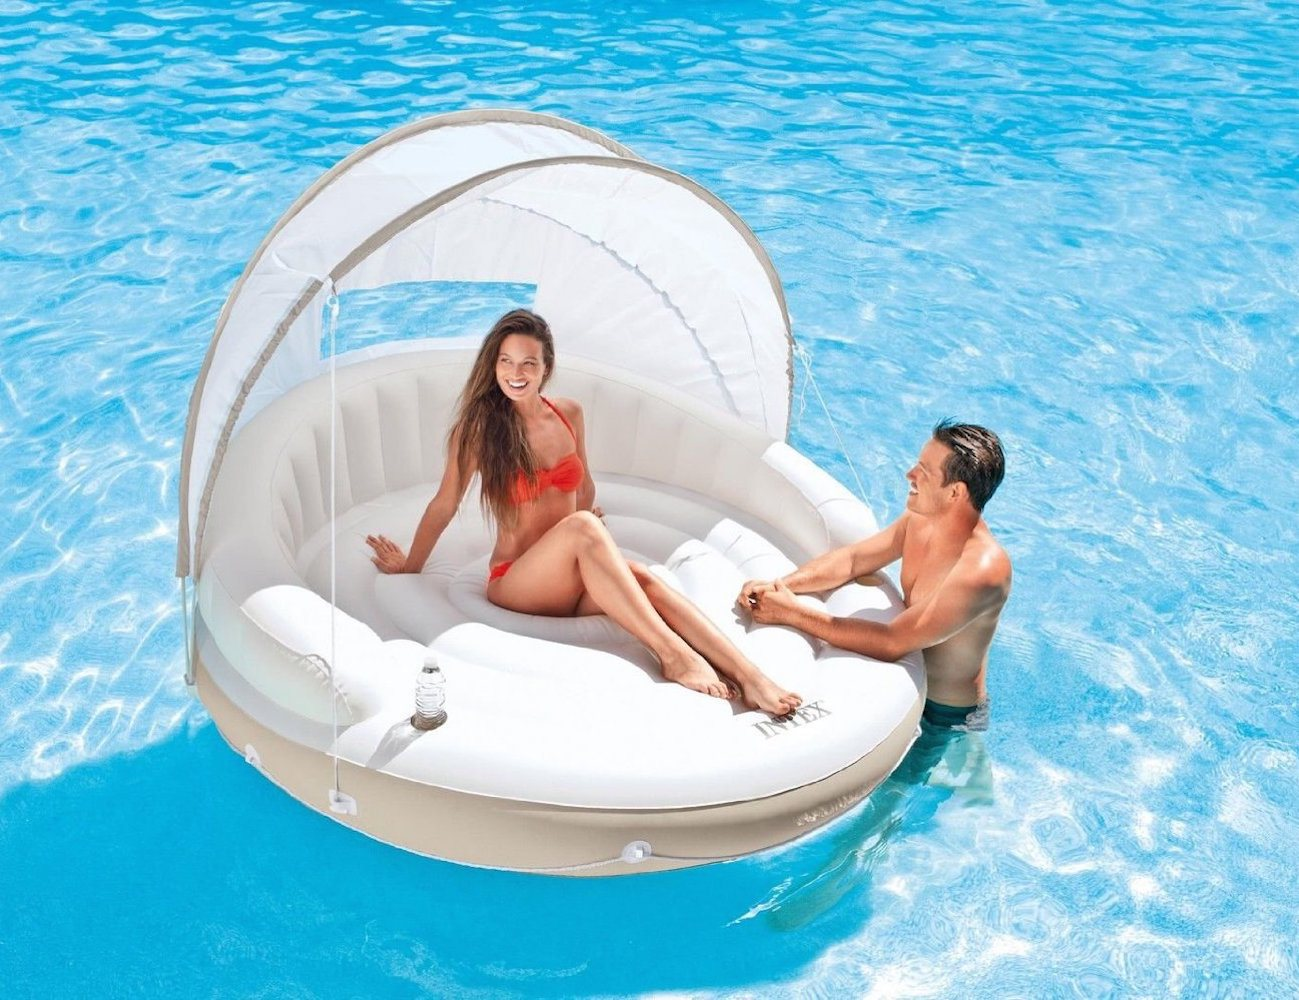 Canopy Island Inflatable Water Lounge Raft by Intex Gad Flow